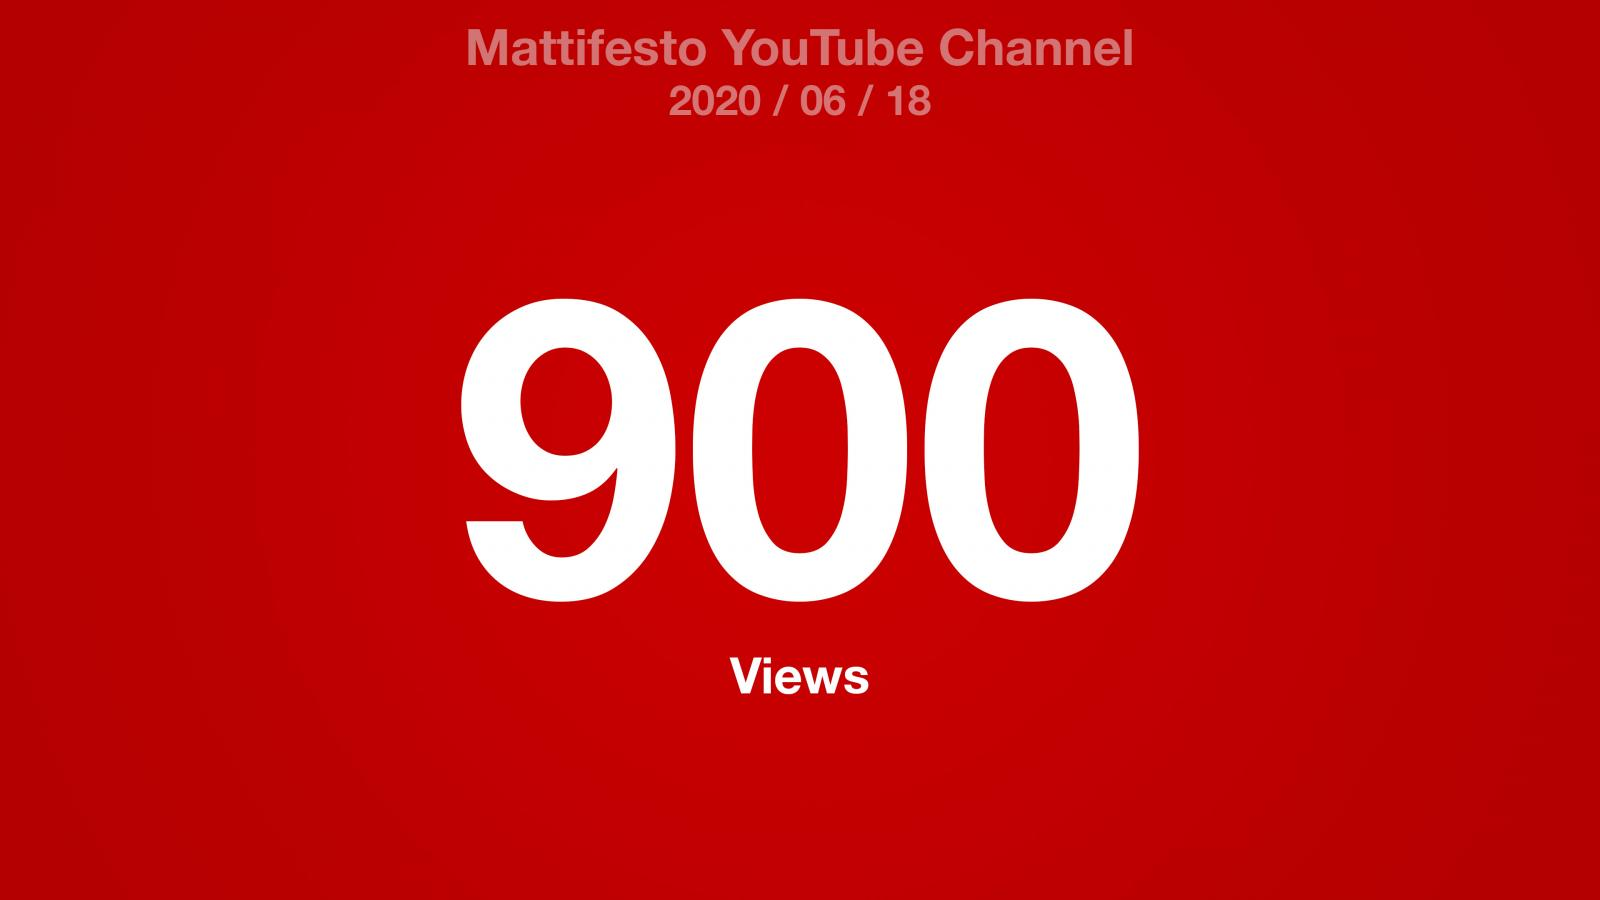 Mattifesto YouTube Channel 900 Views